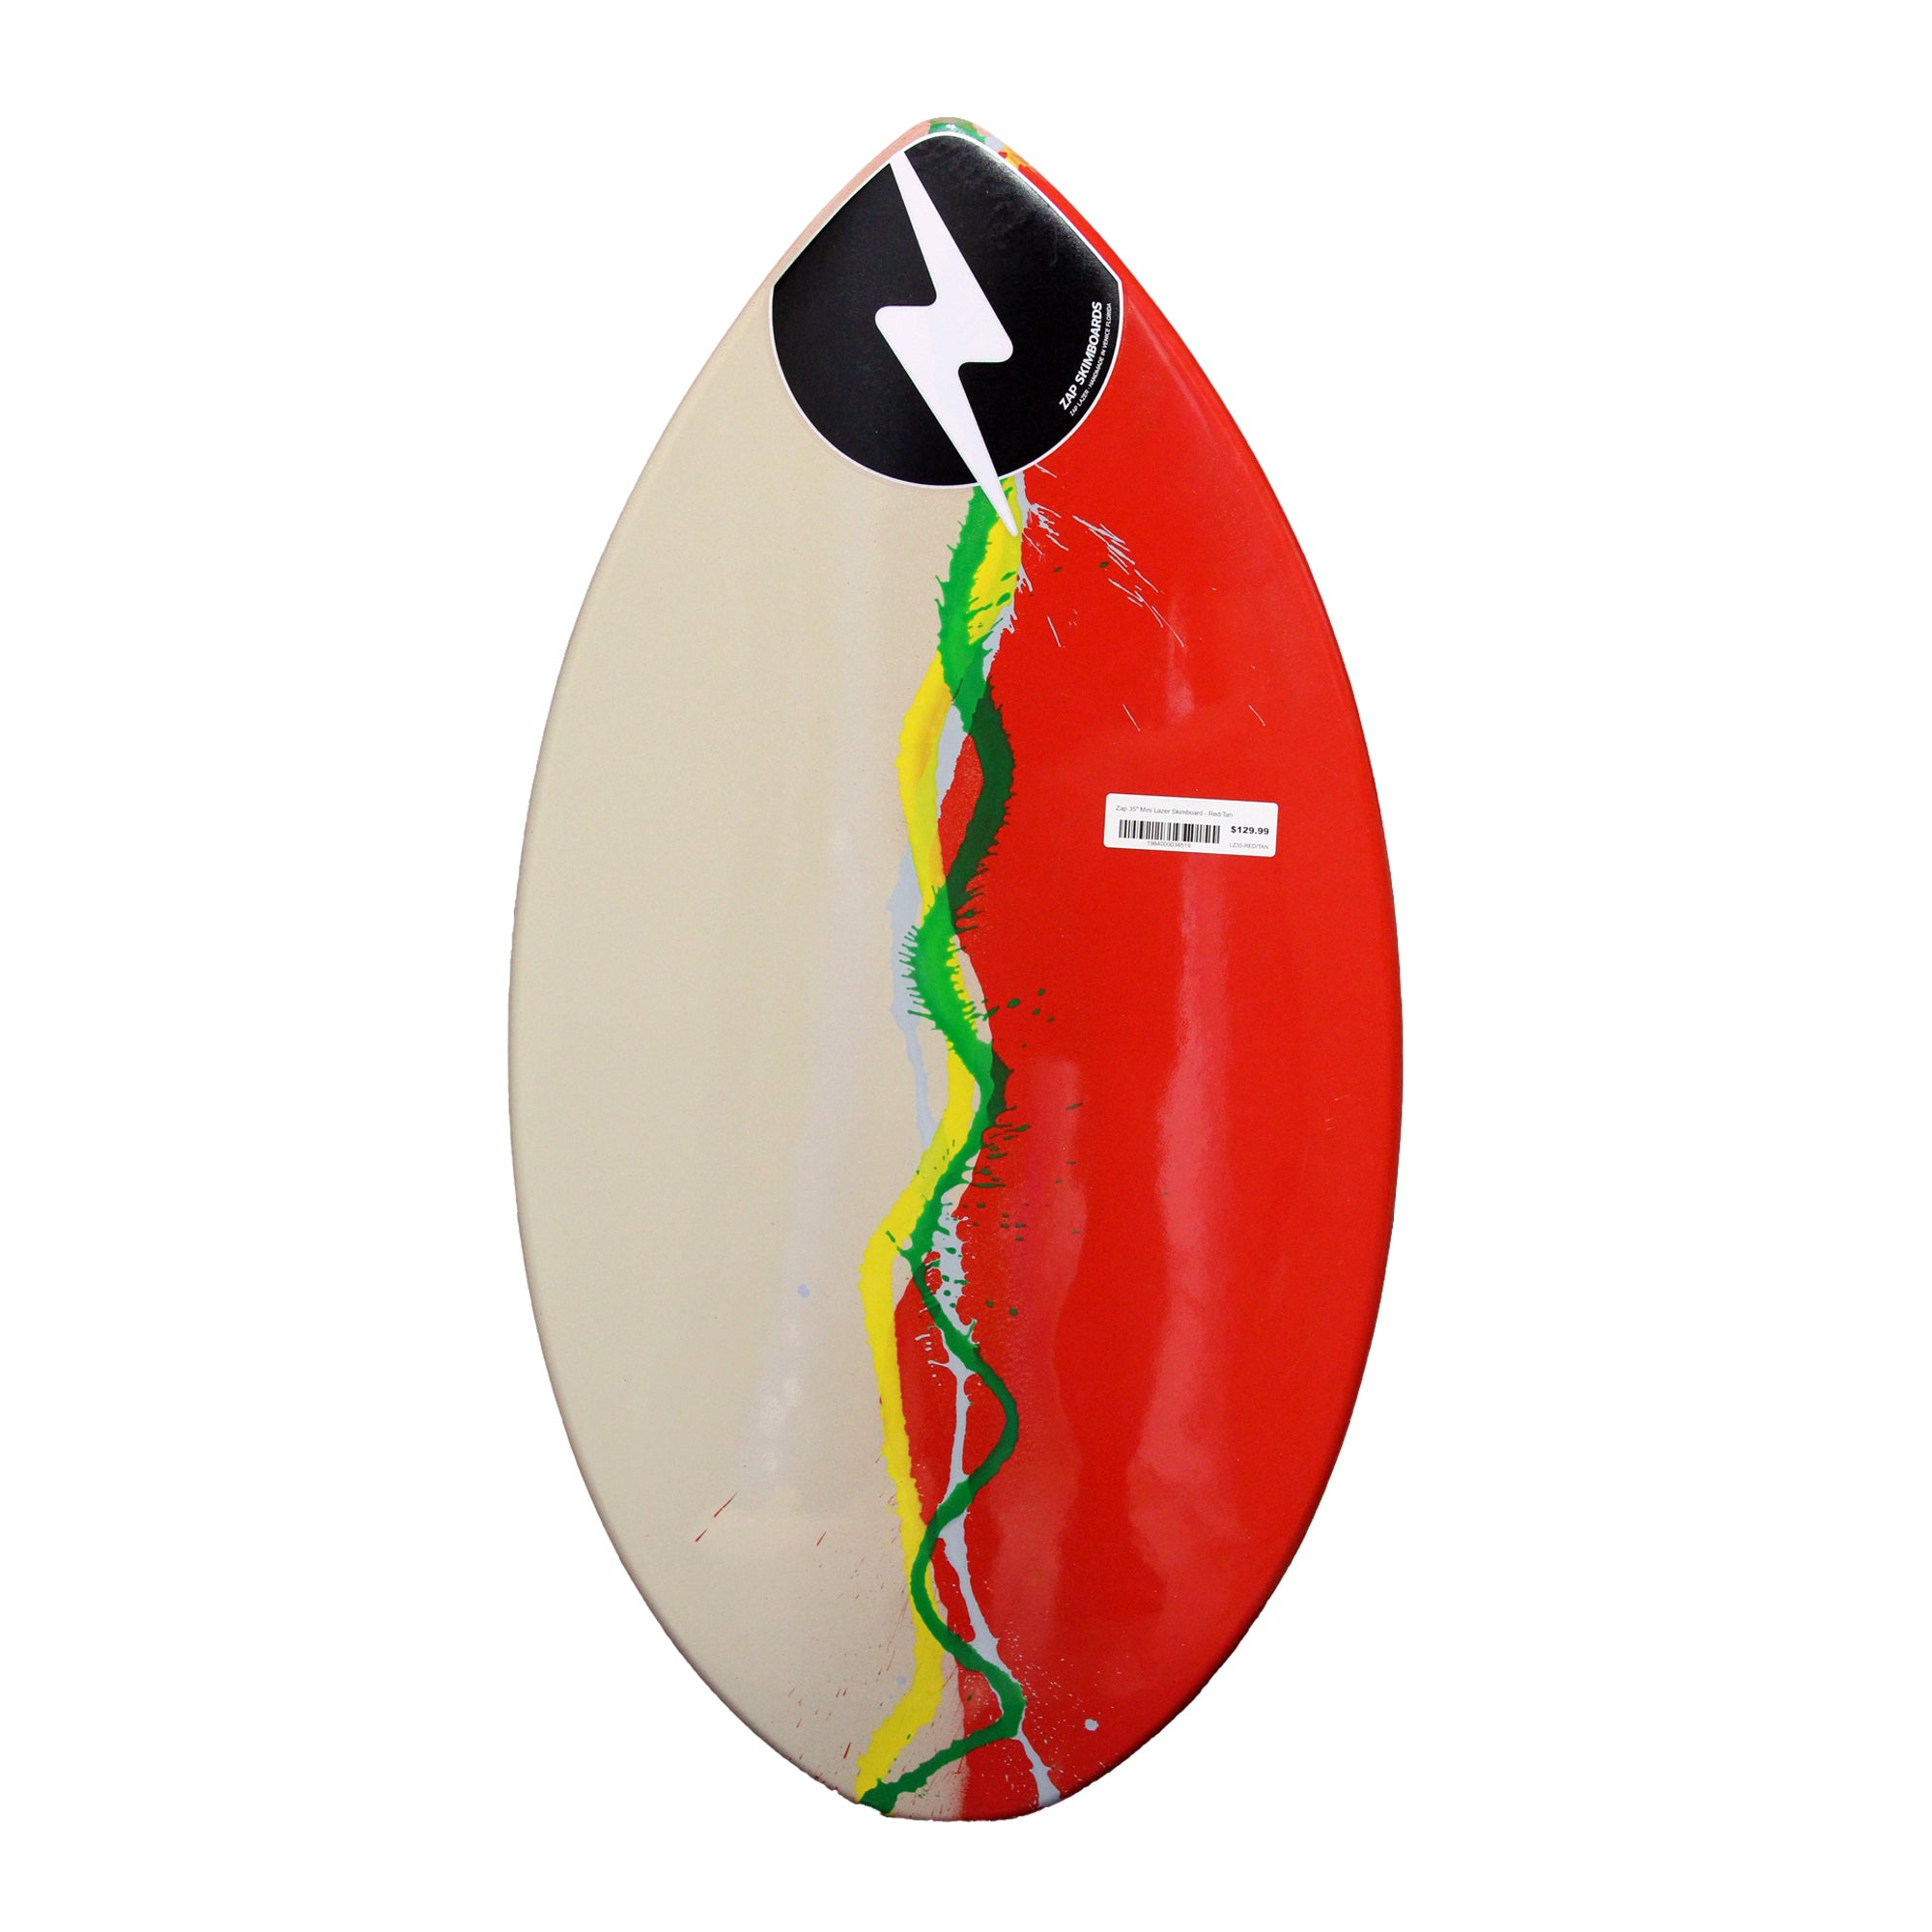 "Zap 35"" Mini Lazer Skimboard - Red/Tan"